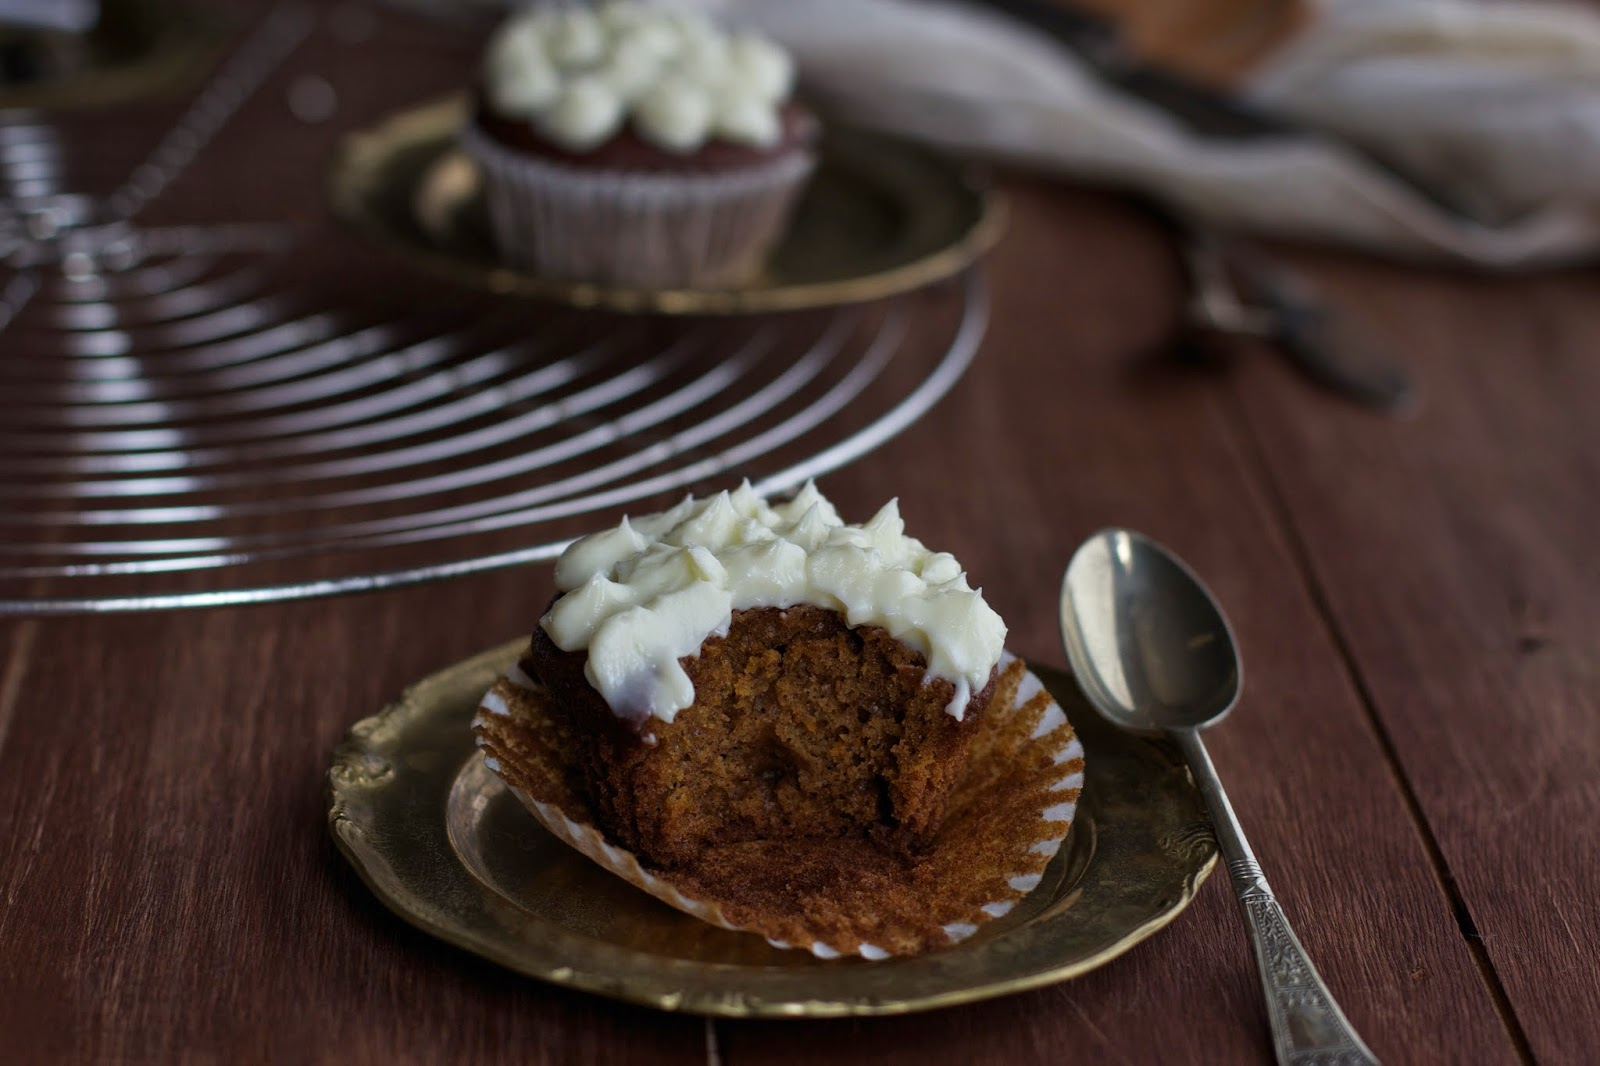 Spiced Pumpkin Cupcake with Cream Cheese Frosting